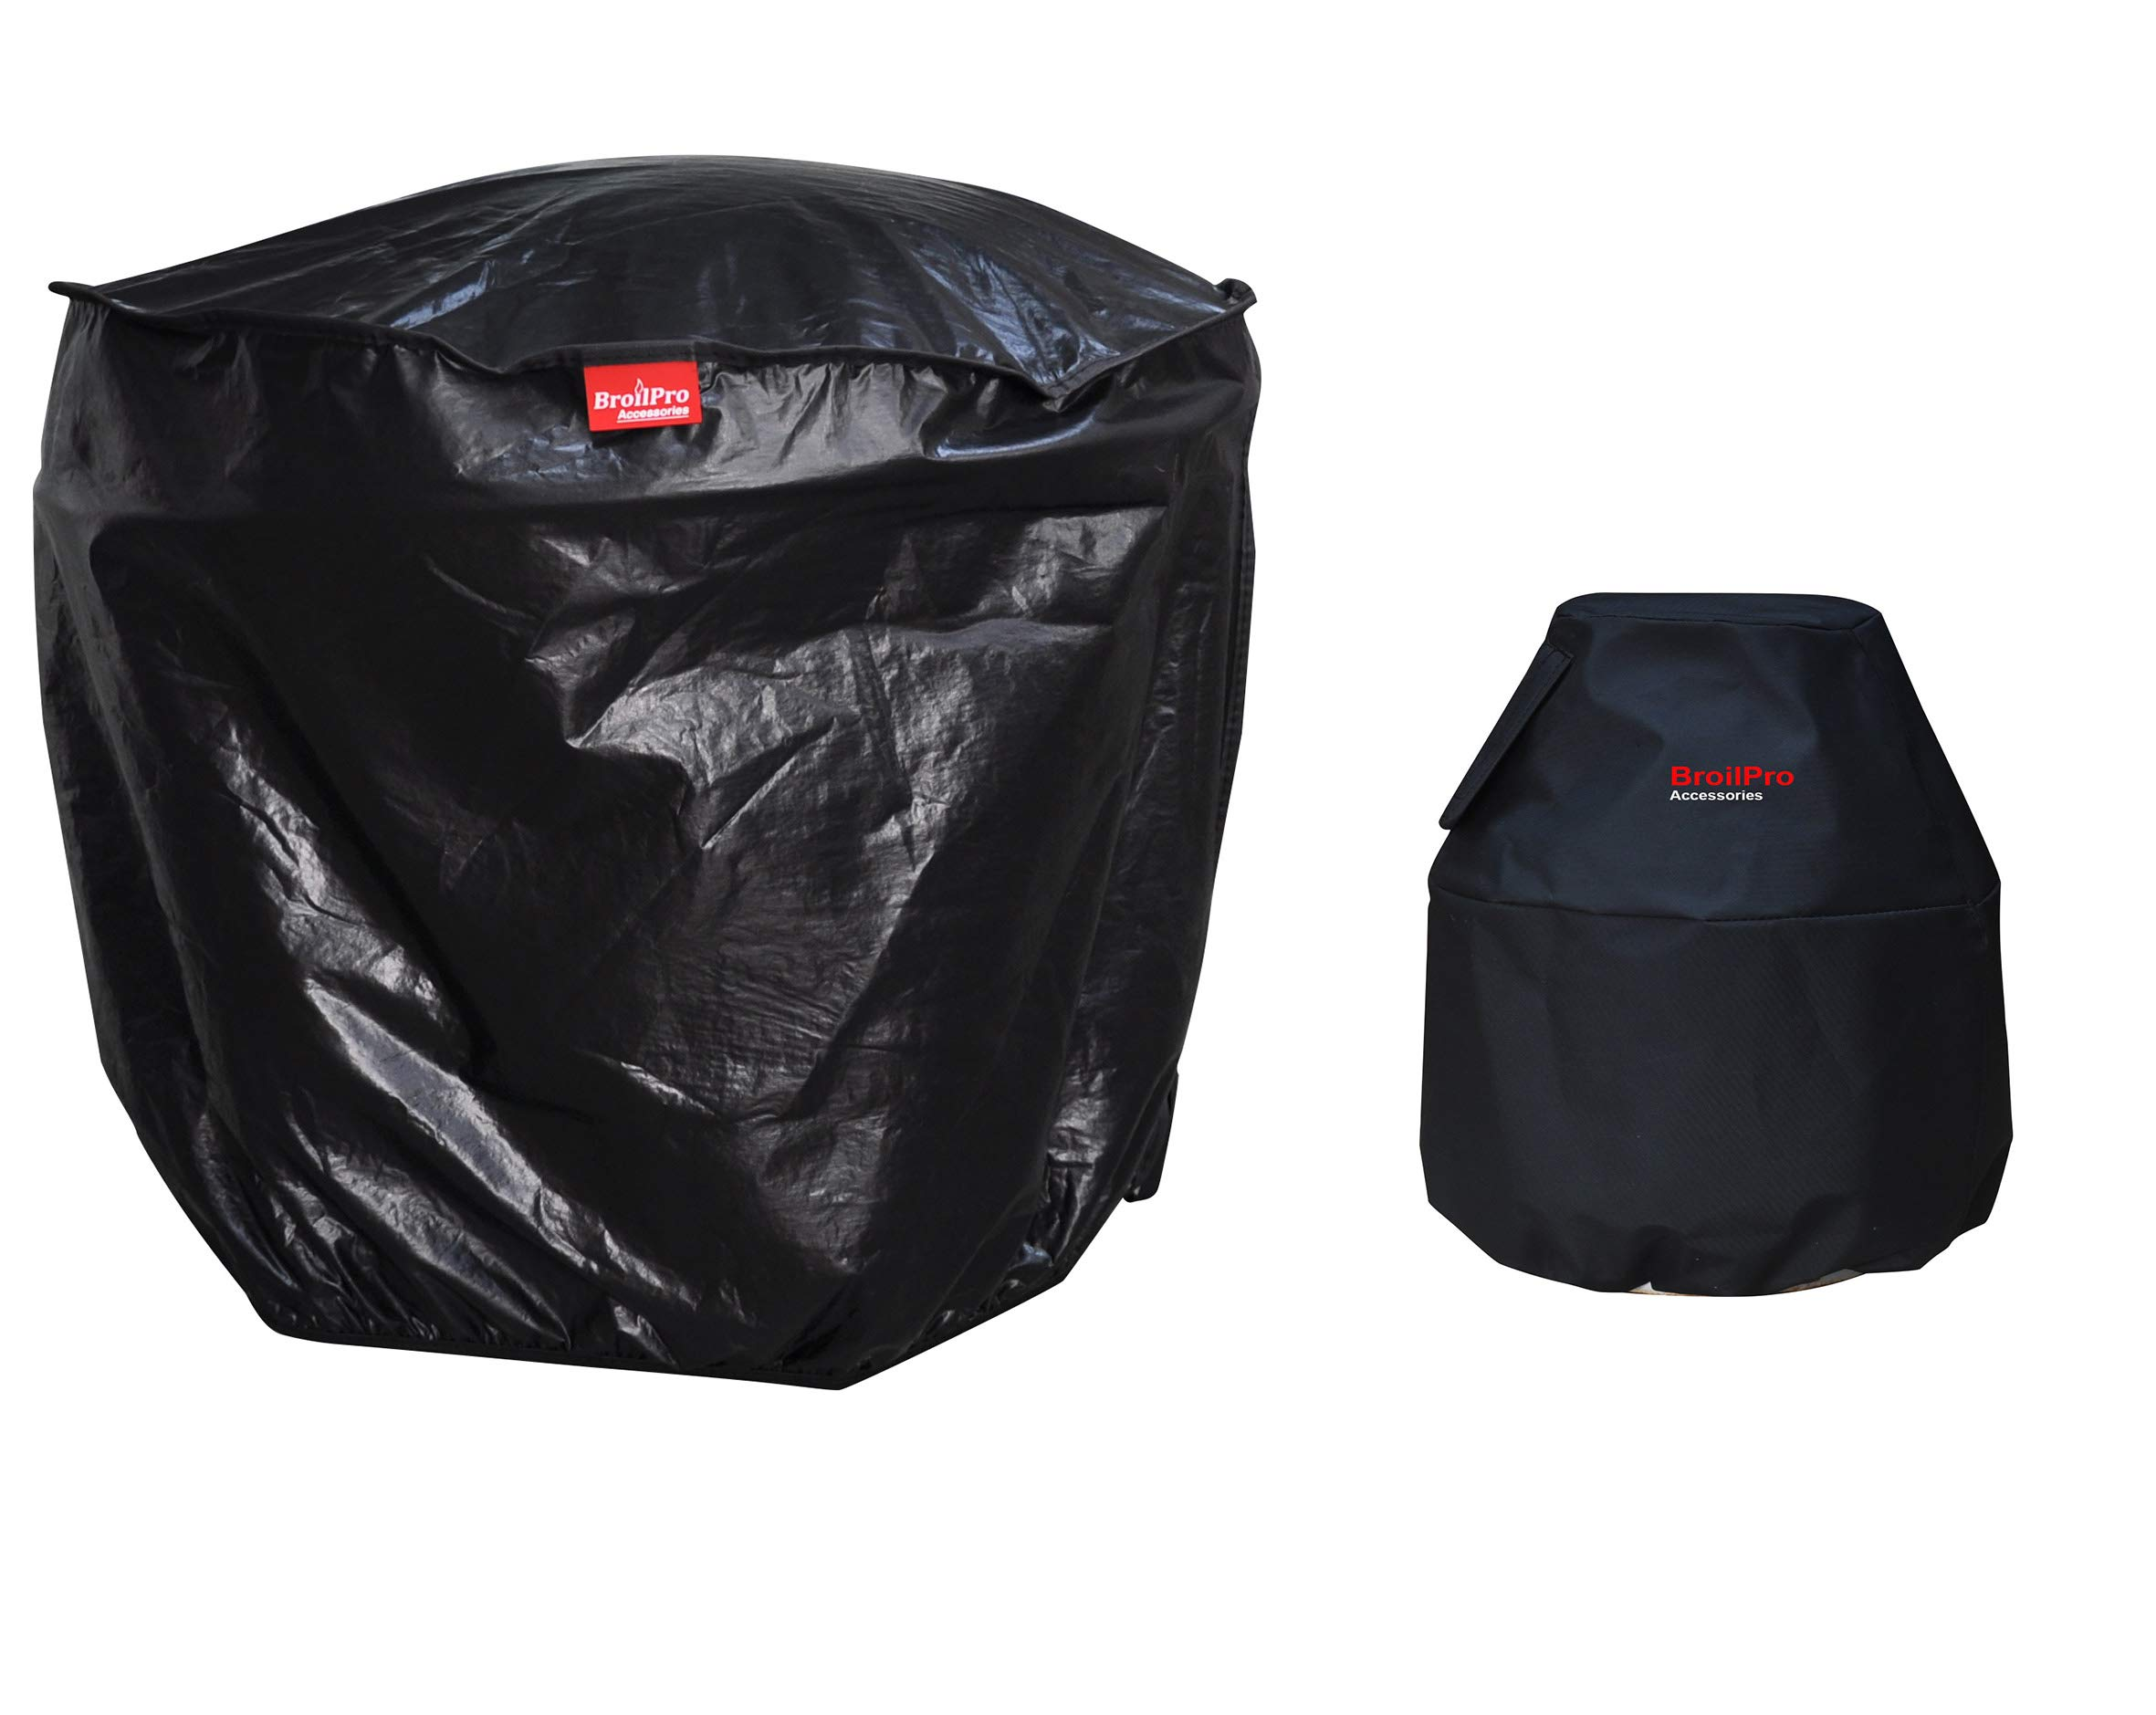 Amazon Com Broilpro Accessories The Big Easy Turkey Fryer Cover